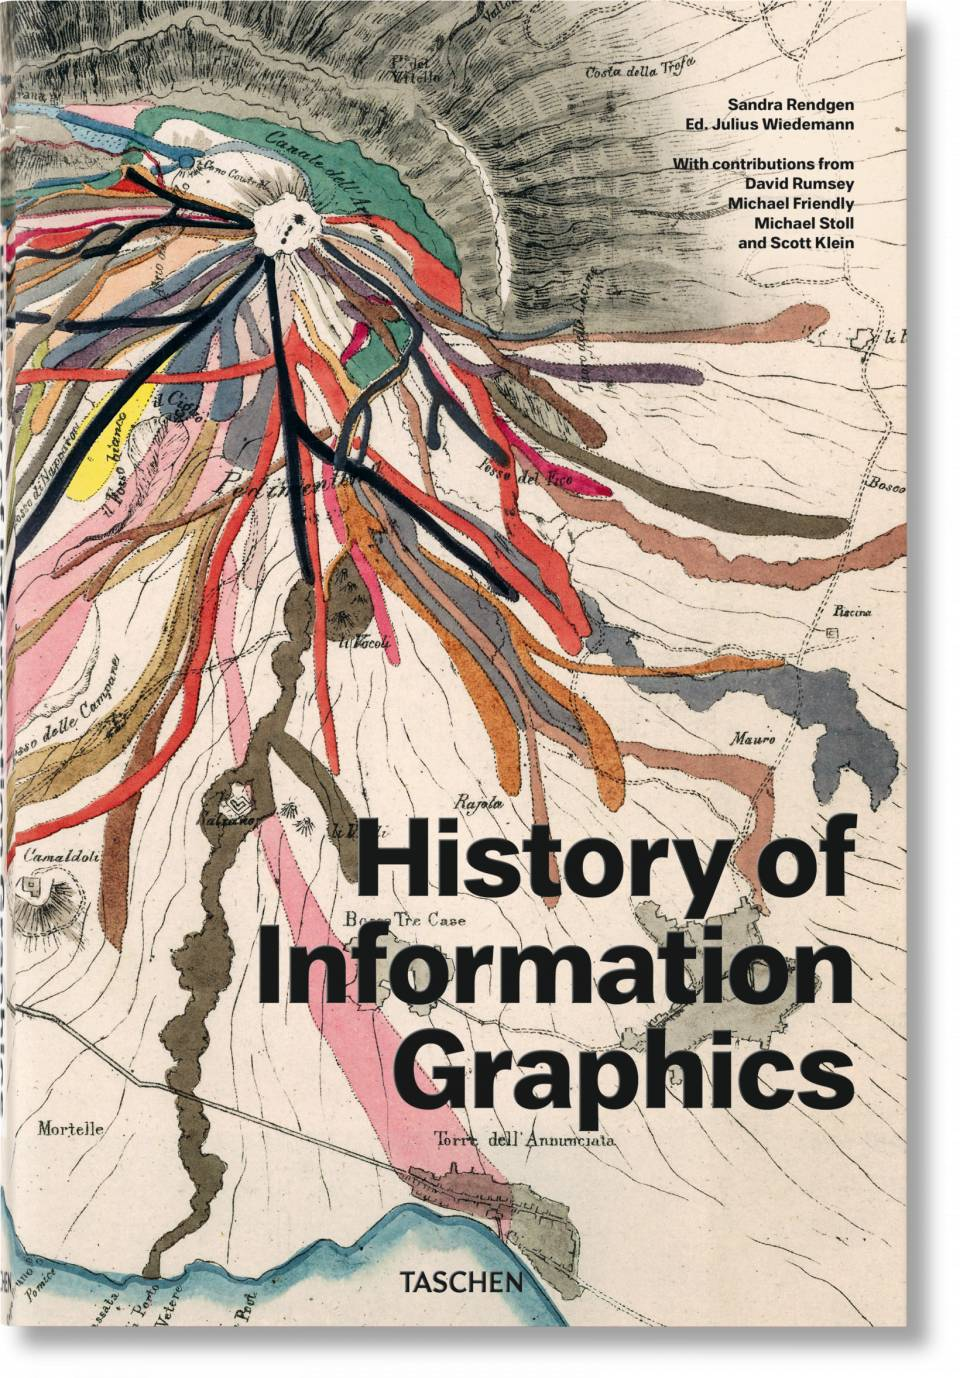 History of Information Graphics - image 1